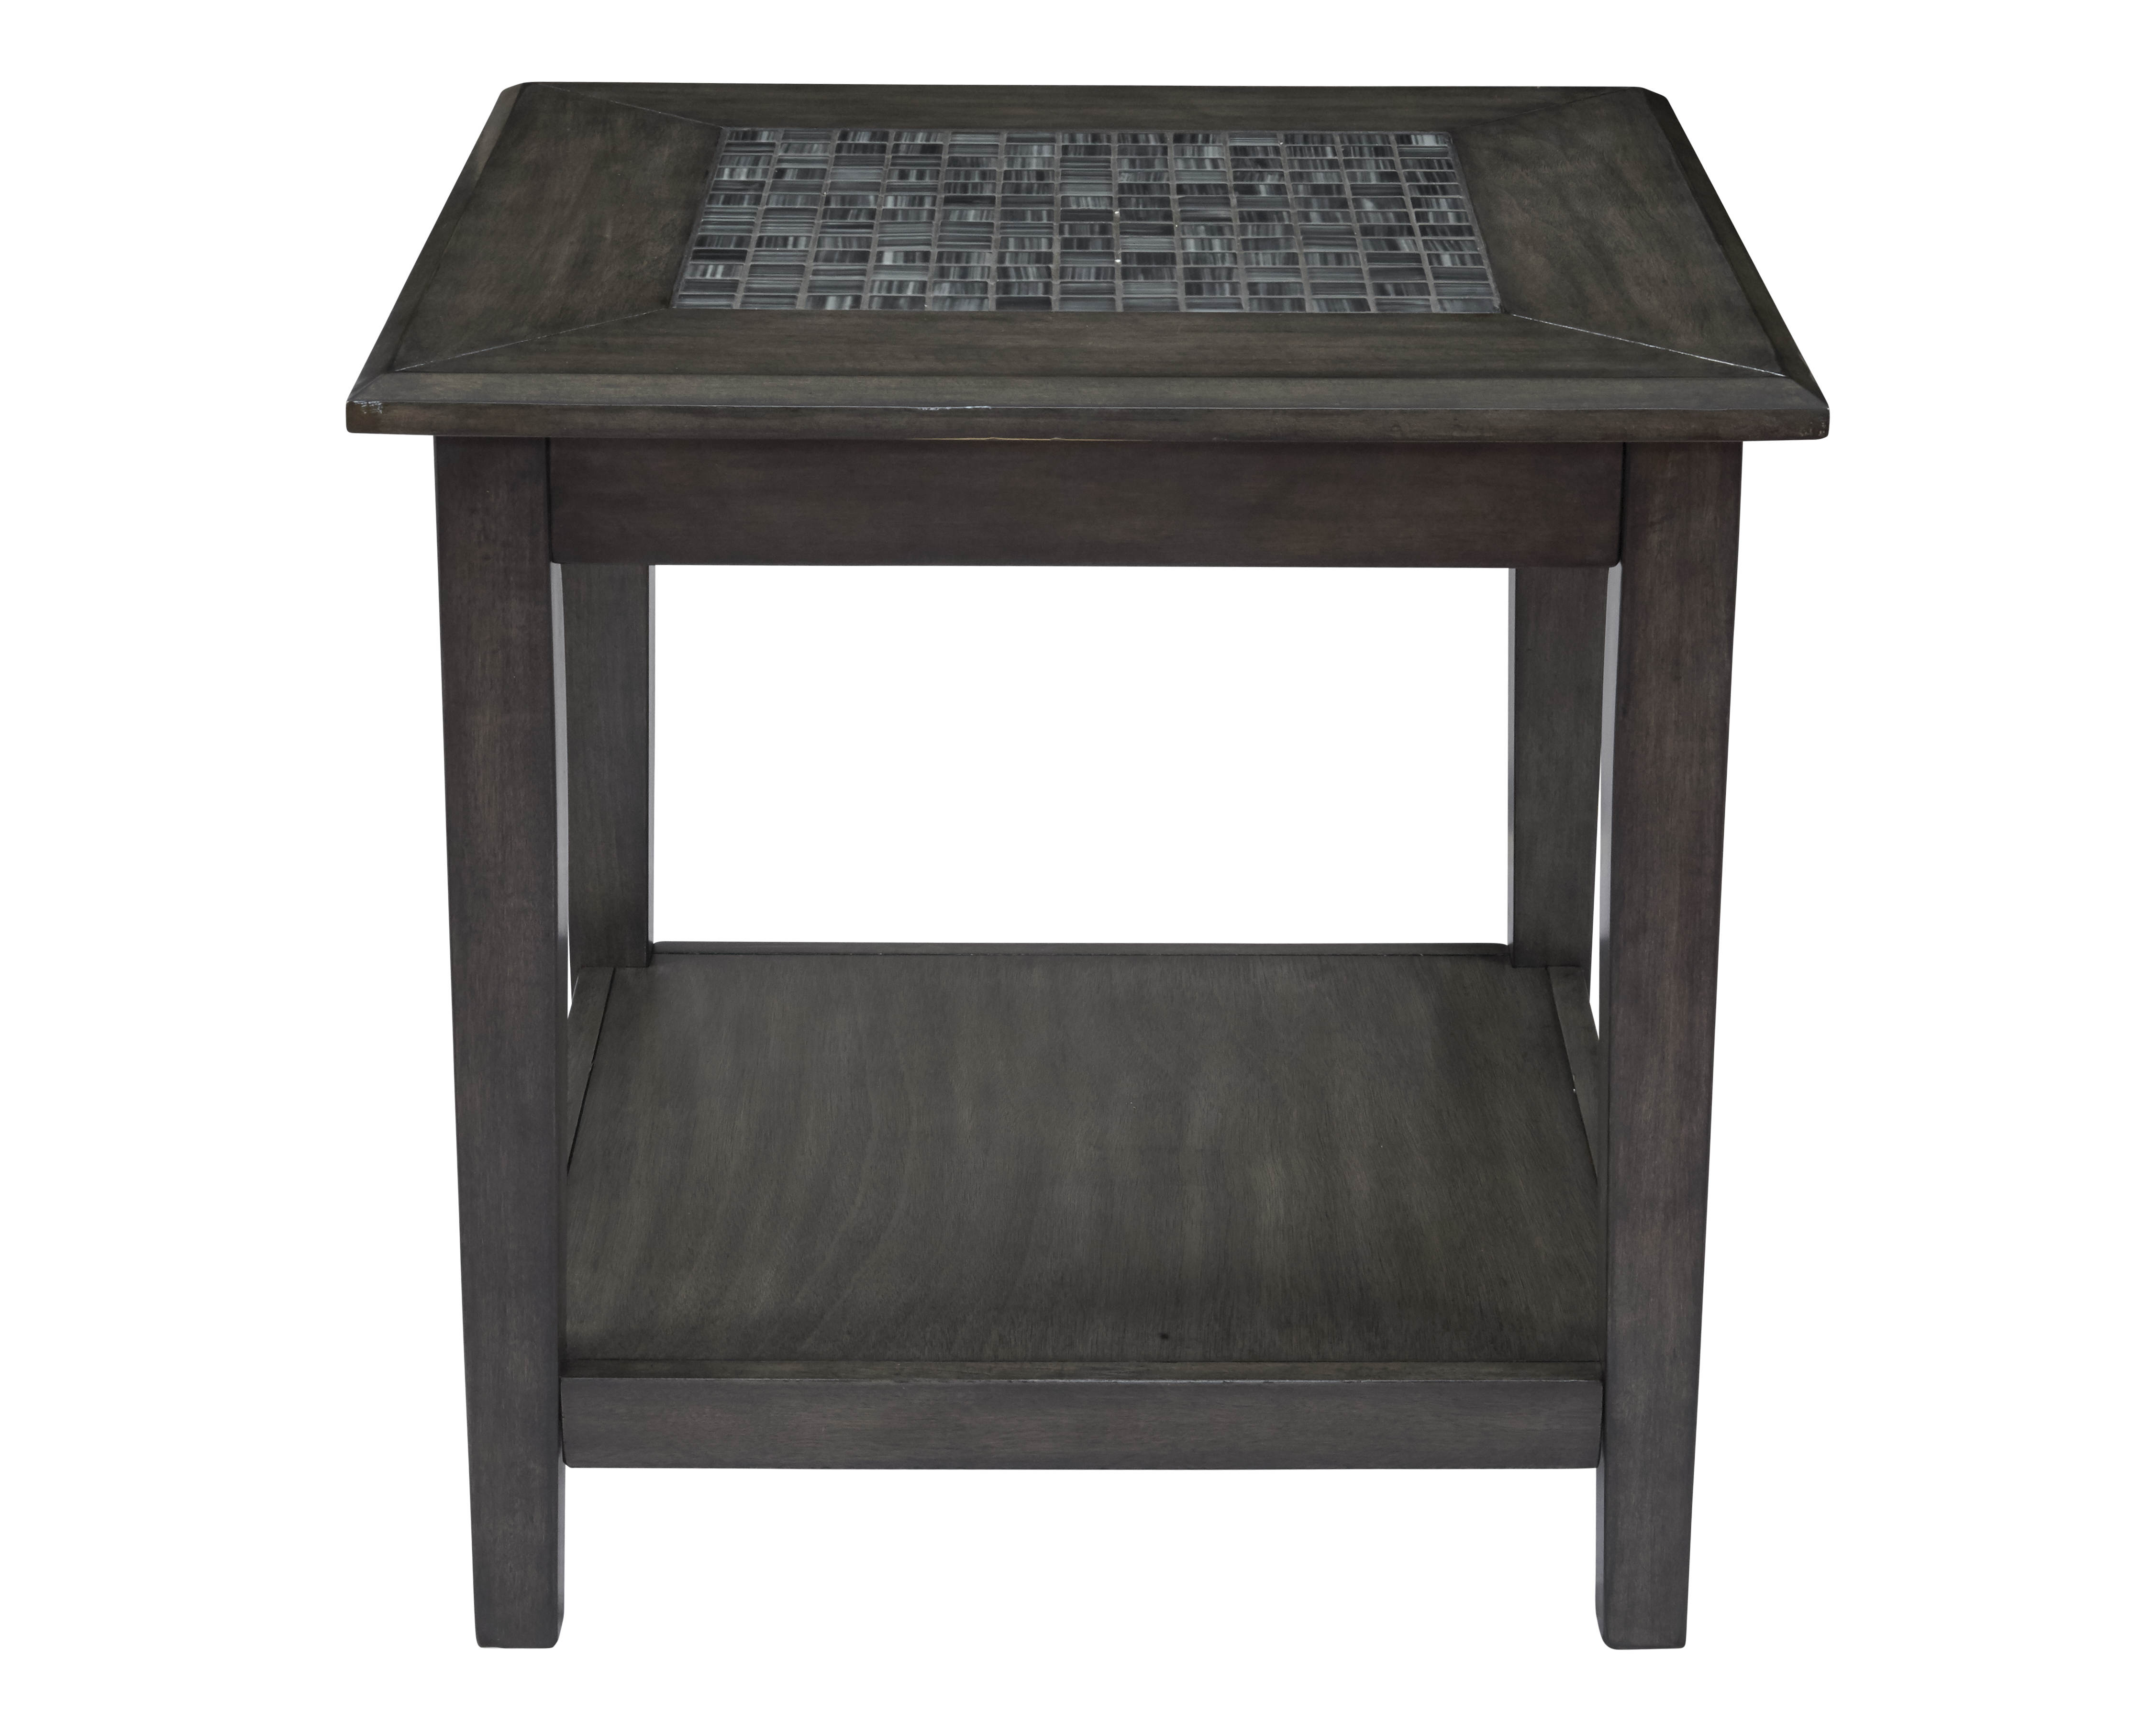 jofran furniture grey mosaic end table the classy home jfn front coffee tables click enlarge modern collection console contemporary lamp for living room dog kennel night stand